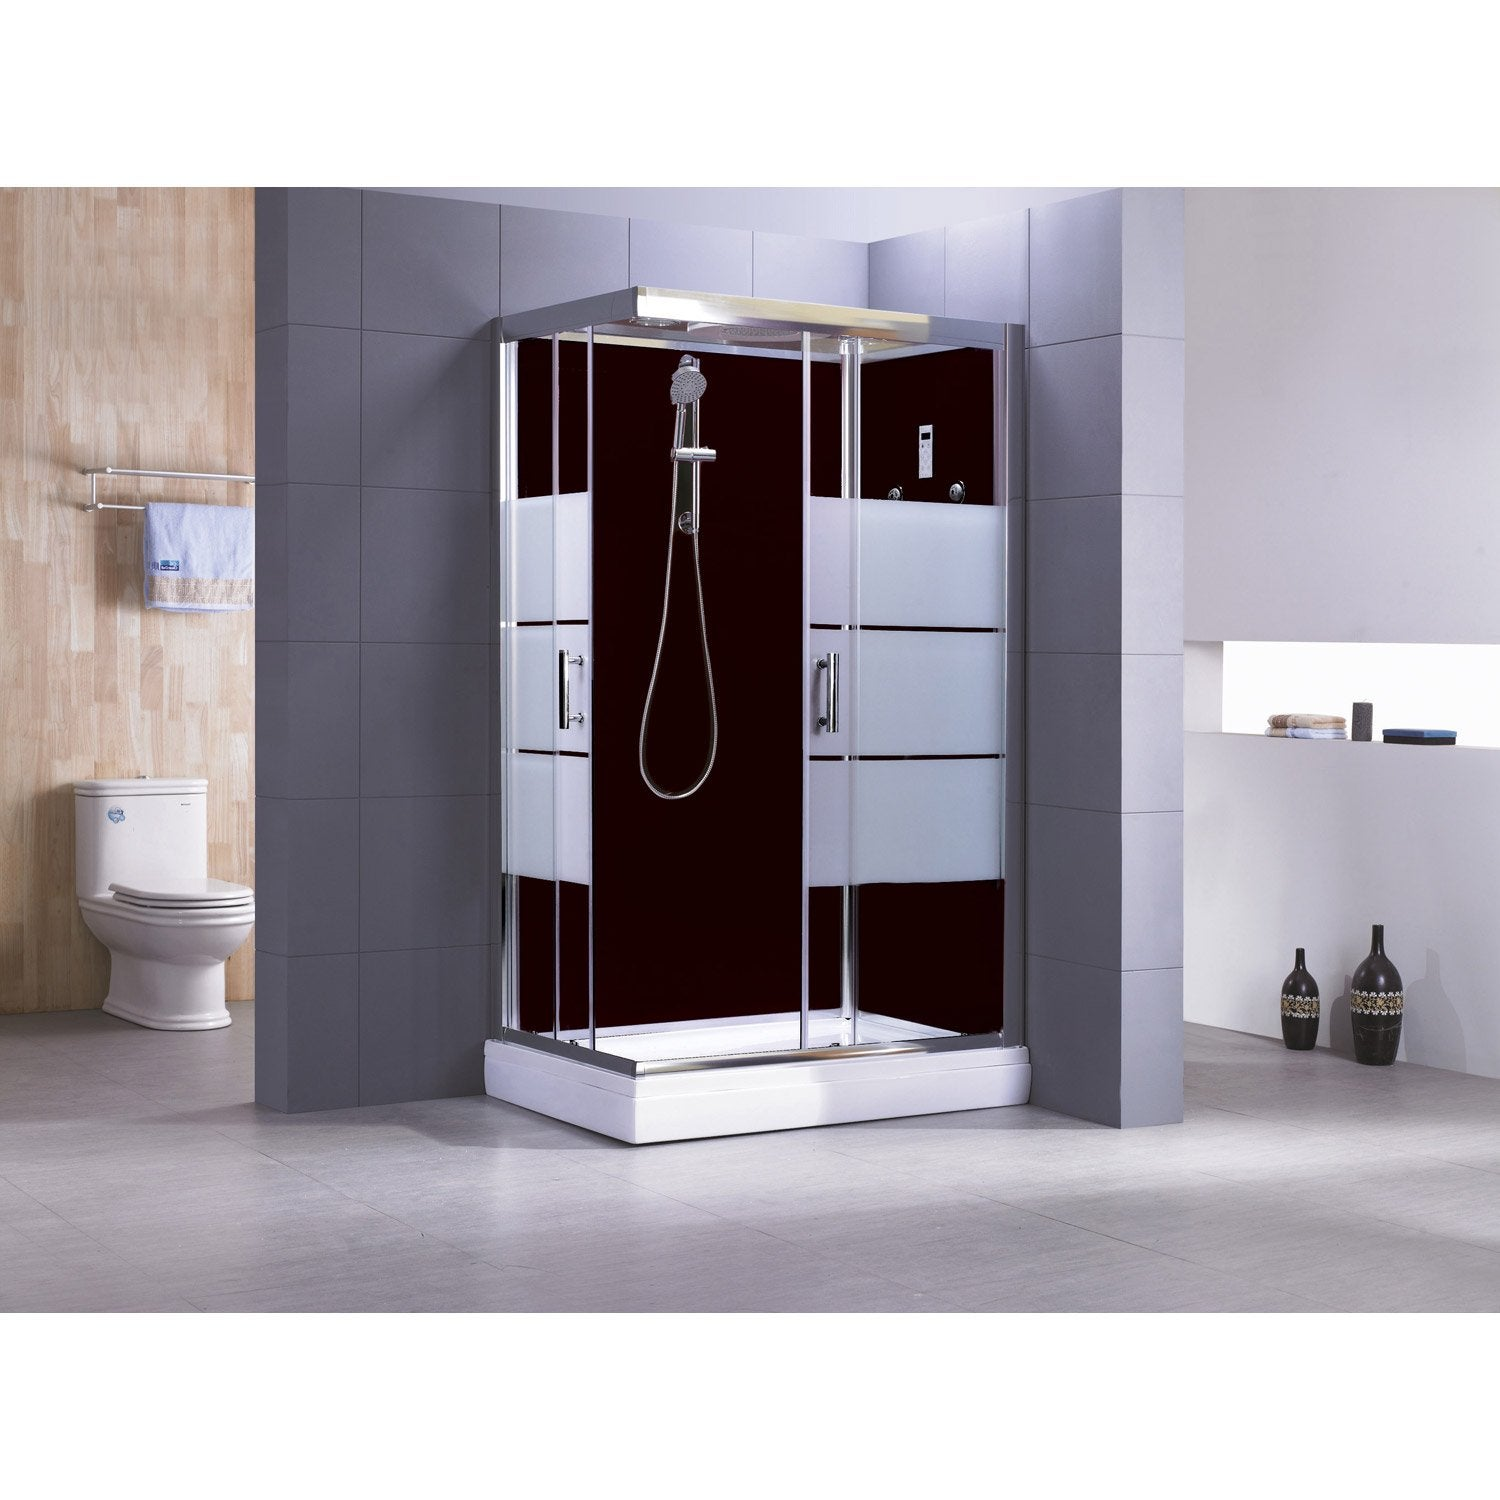 cabine de douche rectangulaire 120x80 cm optima2 noire. Black Bedroom Furniture Sets. Home Design Ideas